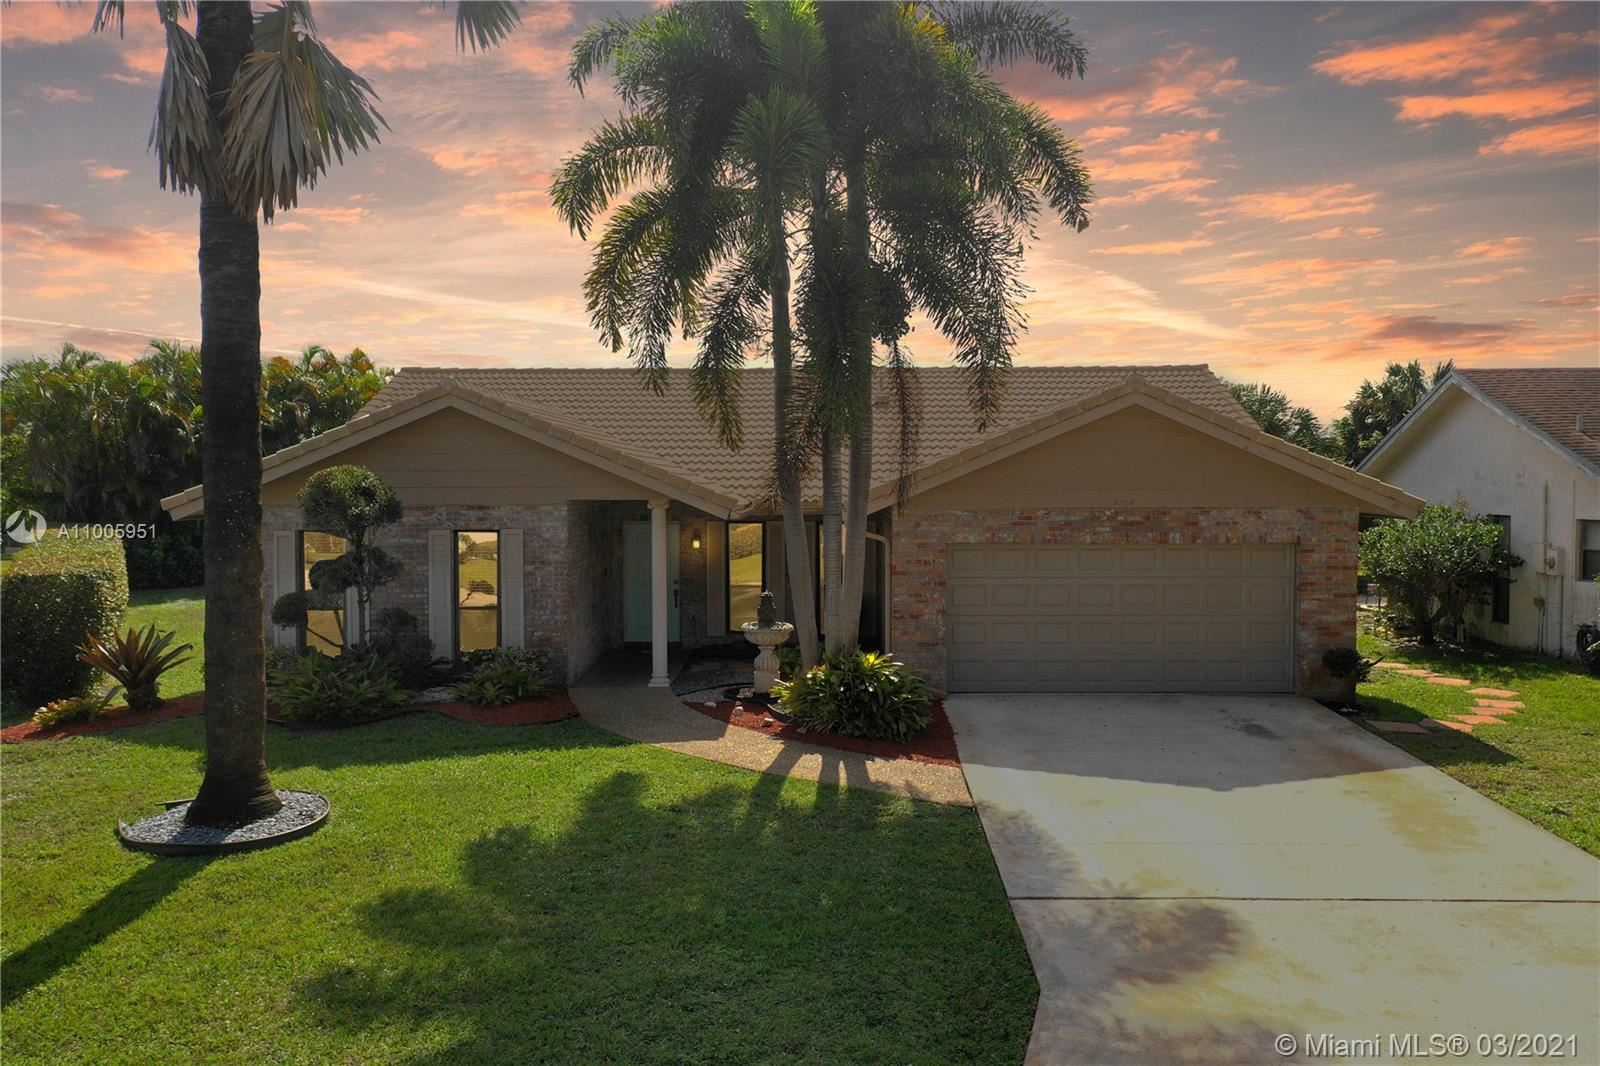 7014 NW 43rd St, Coral Springs, FL 33065 - MLS#: A11005951